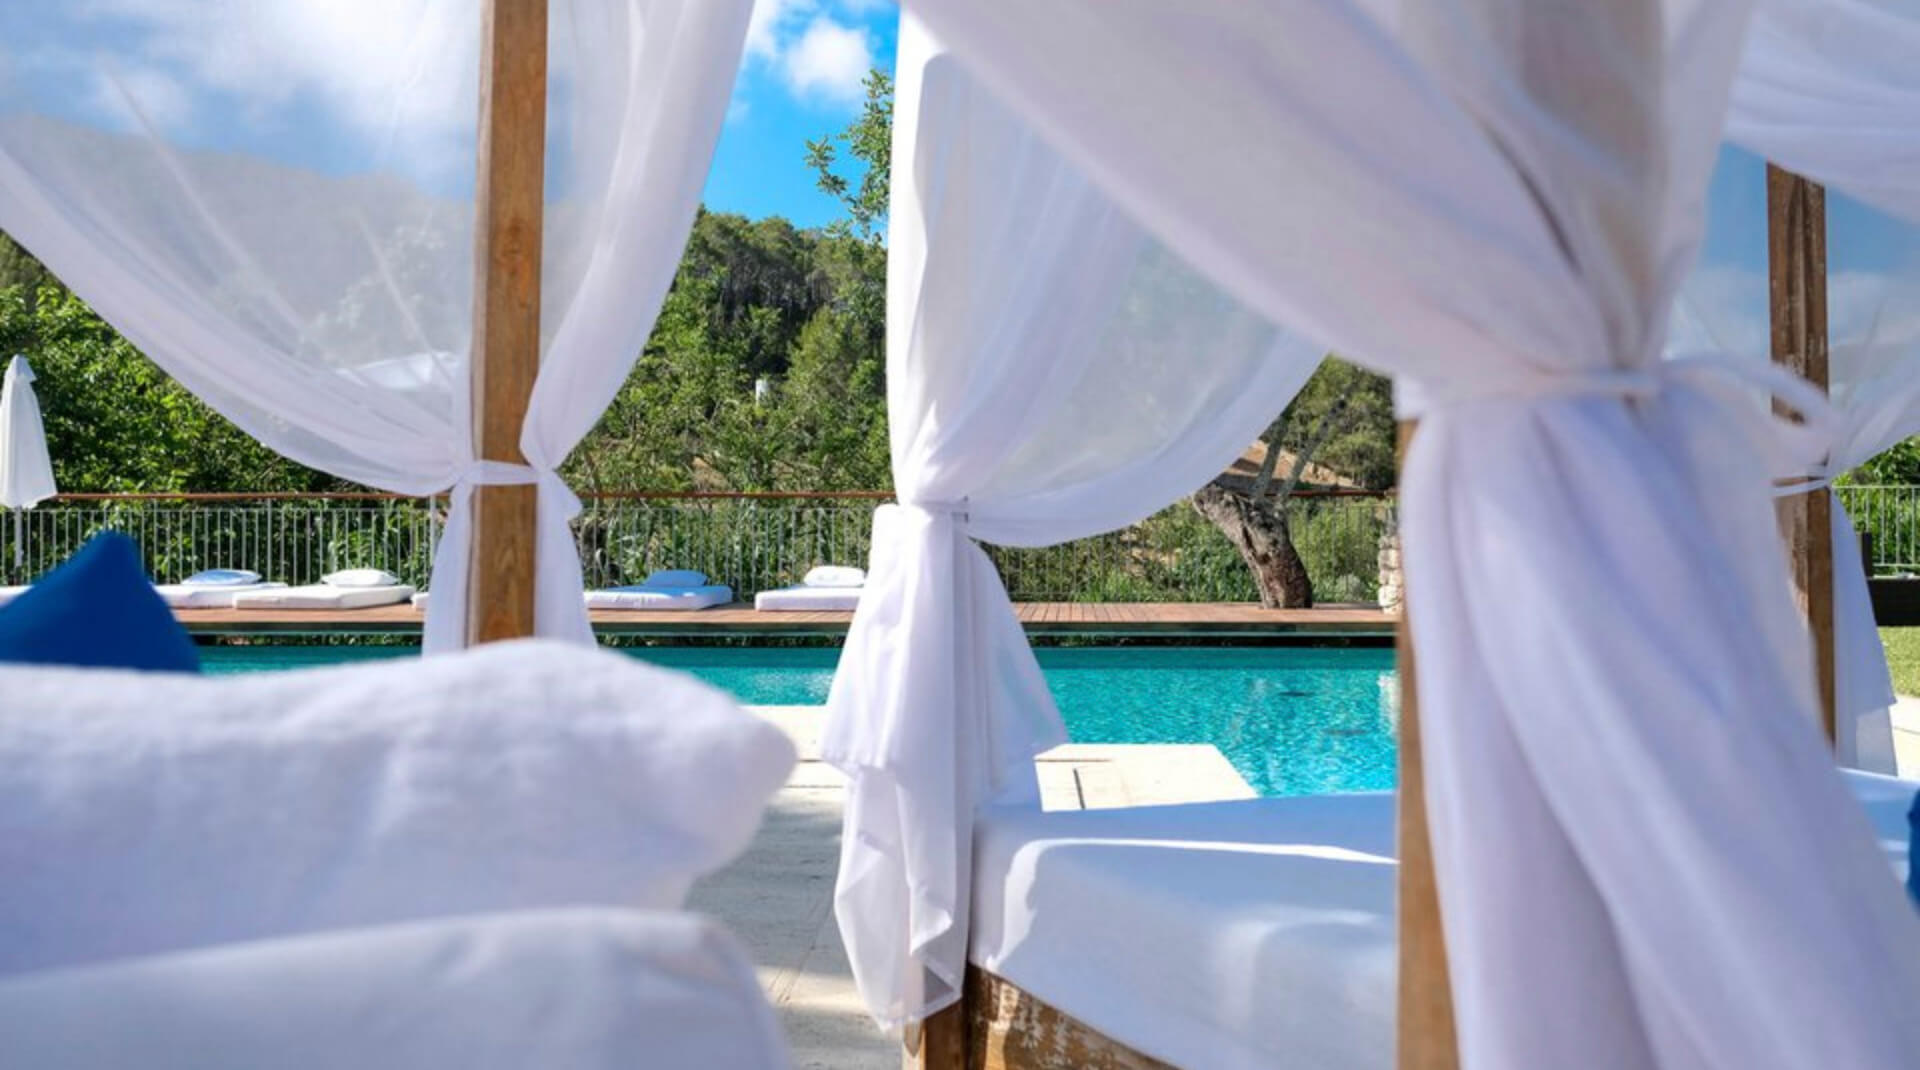 LUXURIA LIFESTYLE BALEARIC ISLANDS AND SOUTHERN SPAIN WELCOMES CAN LLUC AS OUR LATEST PLATINUM PARTNER